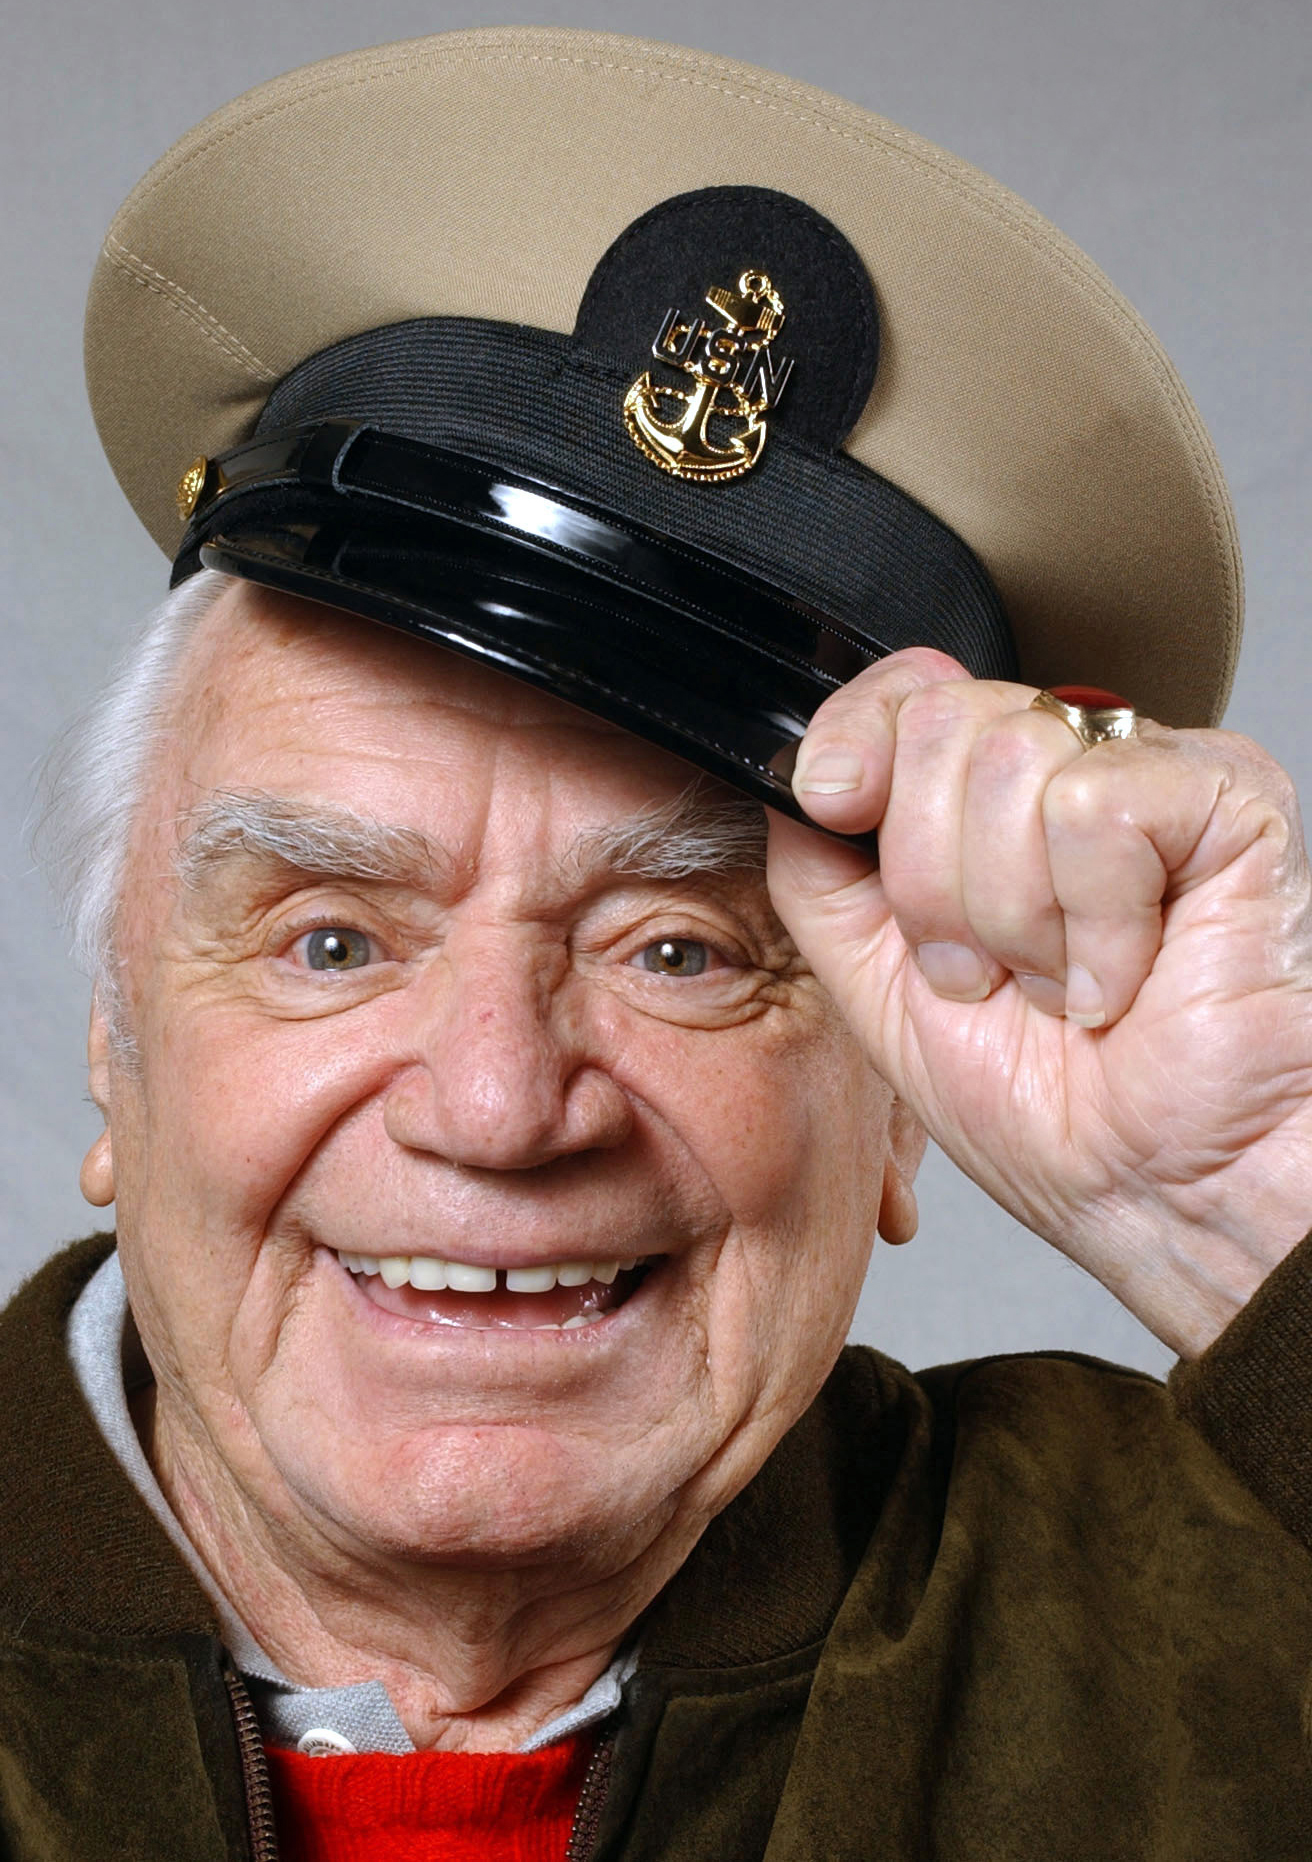 Ernest Borgnine Ernest Borgnine Wikipedia the free encyclopedia